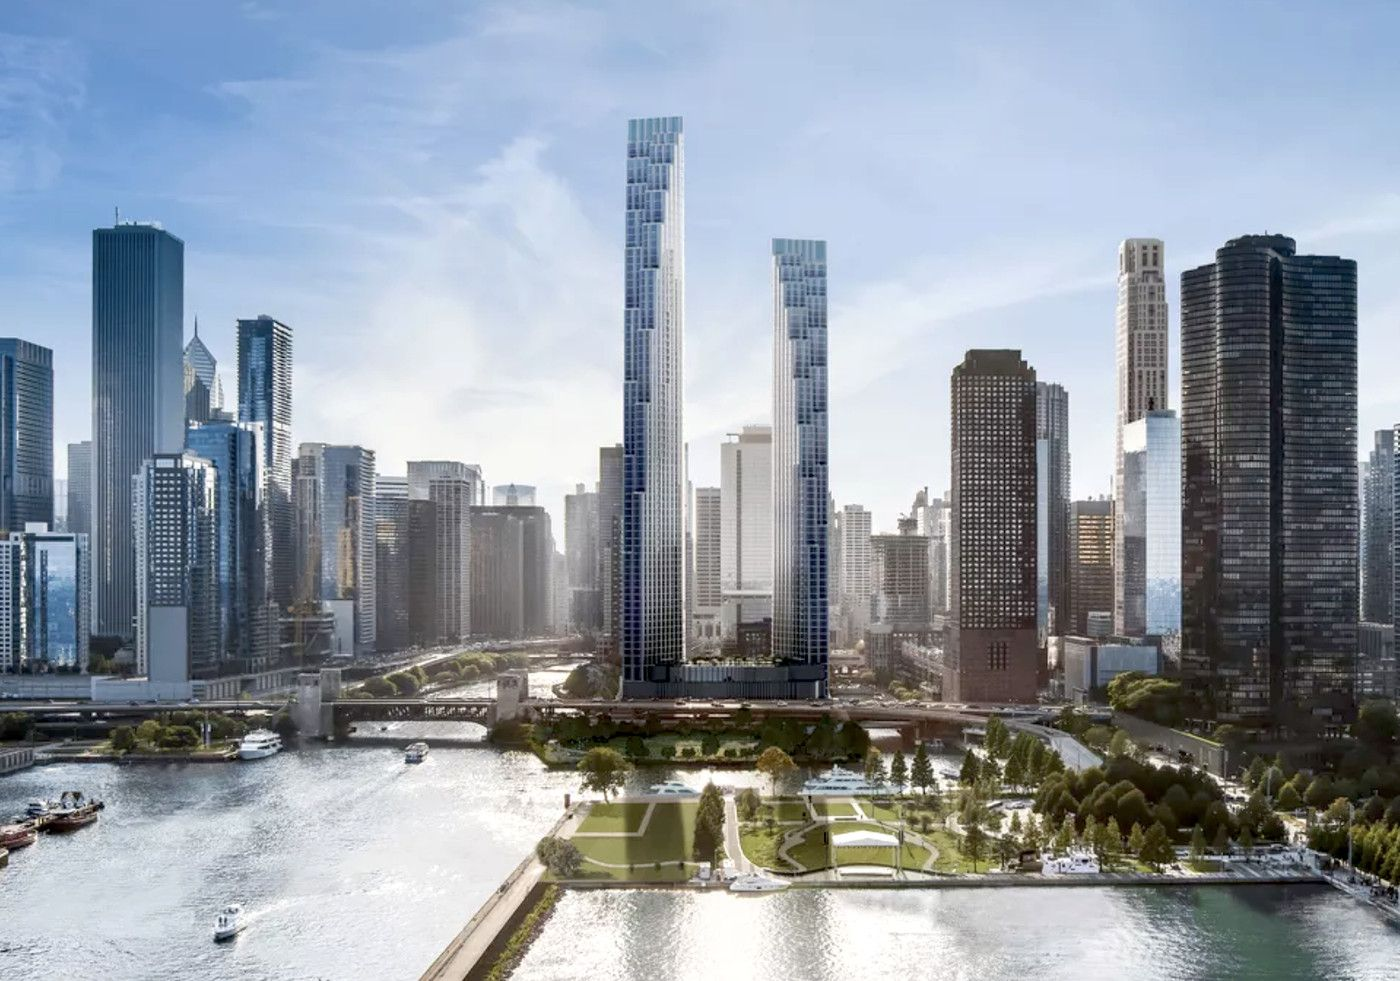 The new skyscrapers changing Chicago's skyline